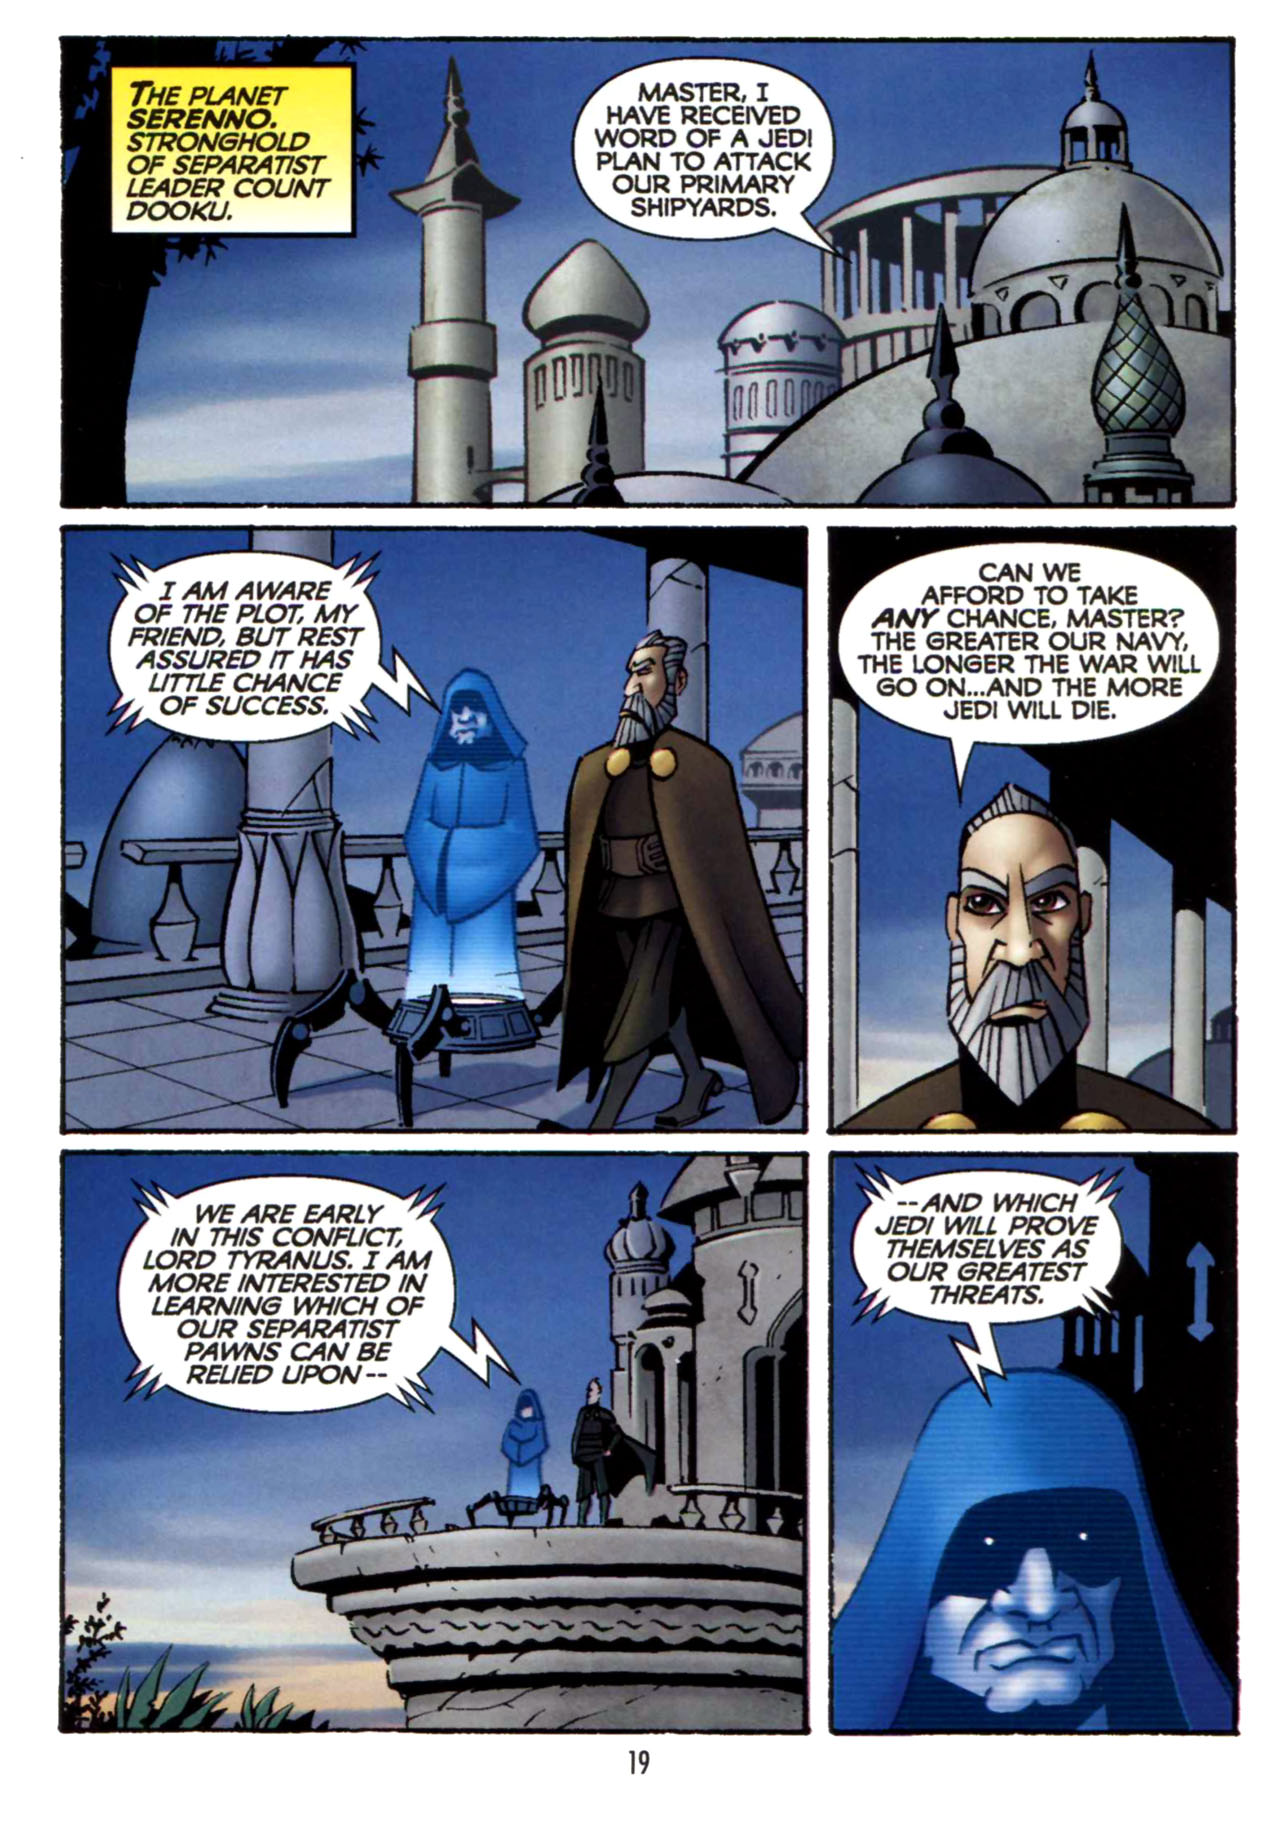 Read online Star Wars: The Clone Wars - Shipyards of Doom comic -  Issue # Full - 18